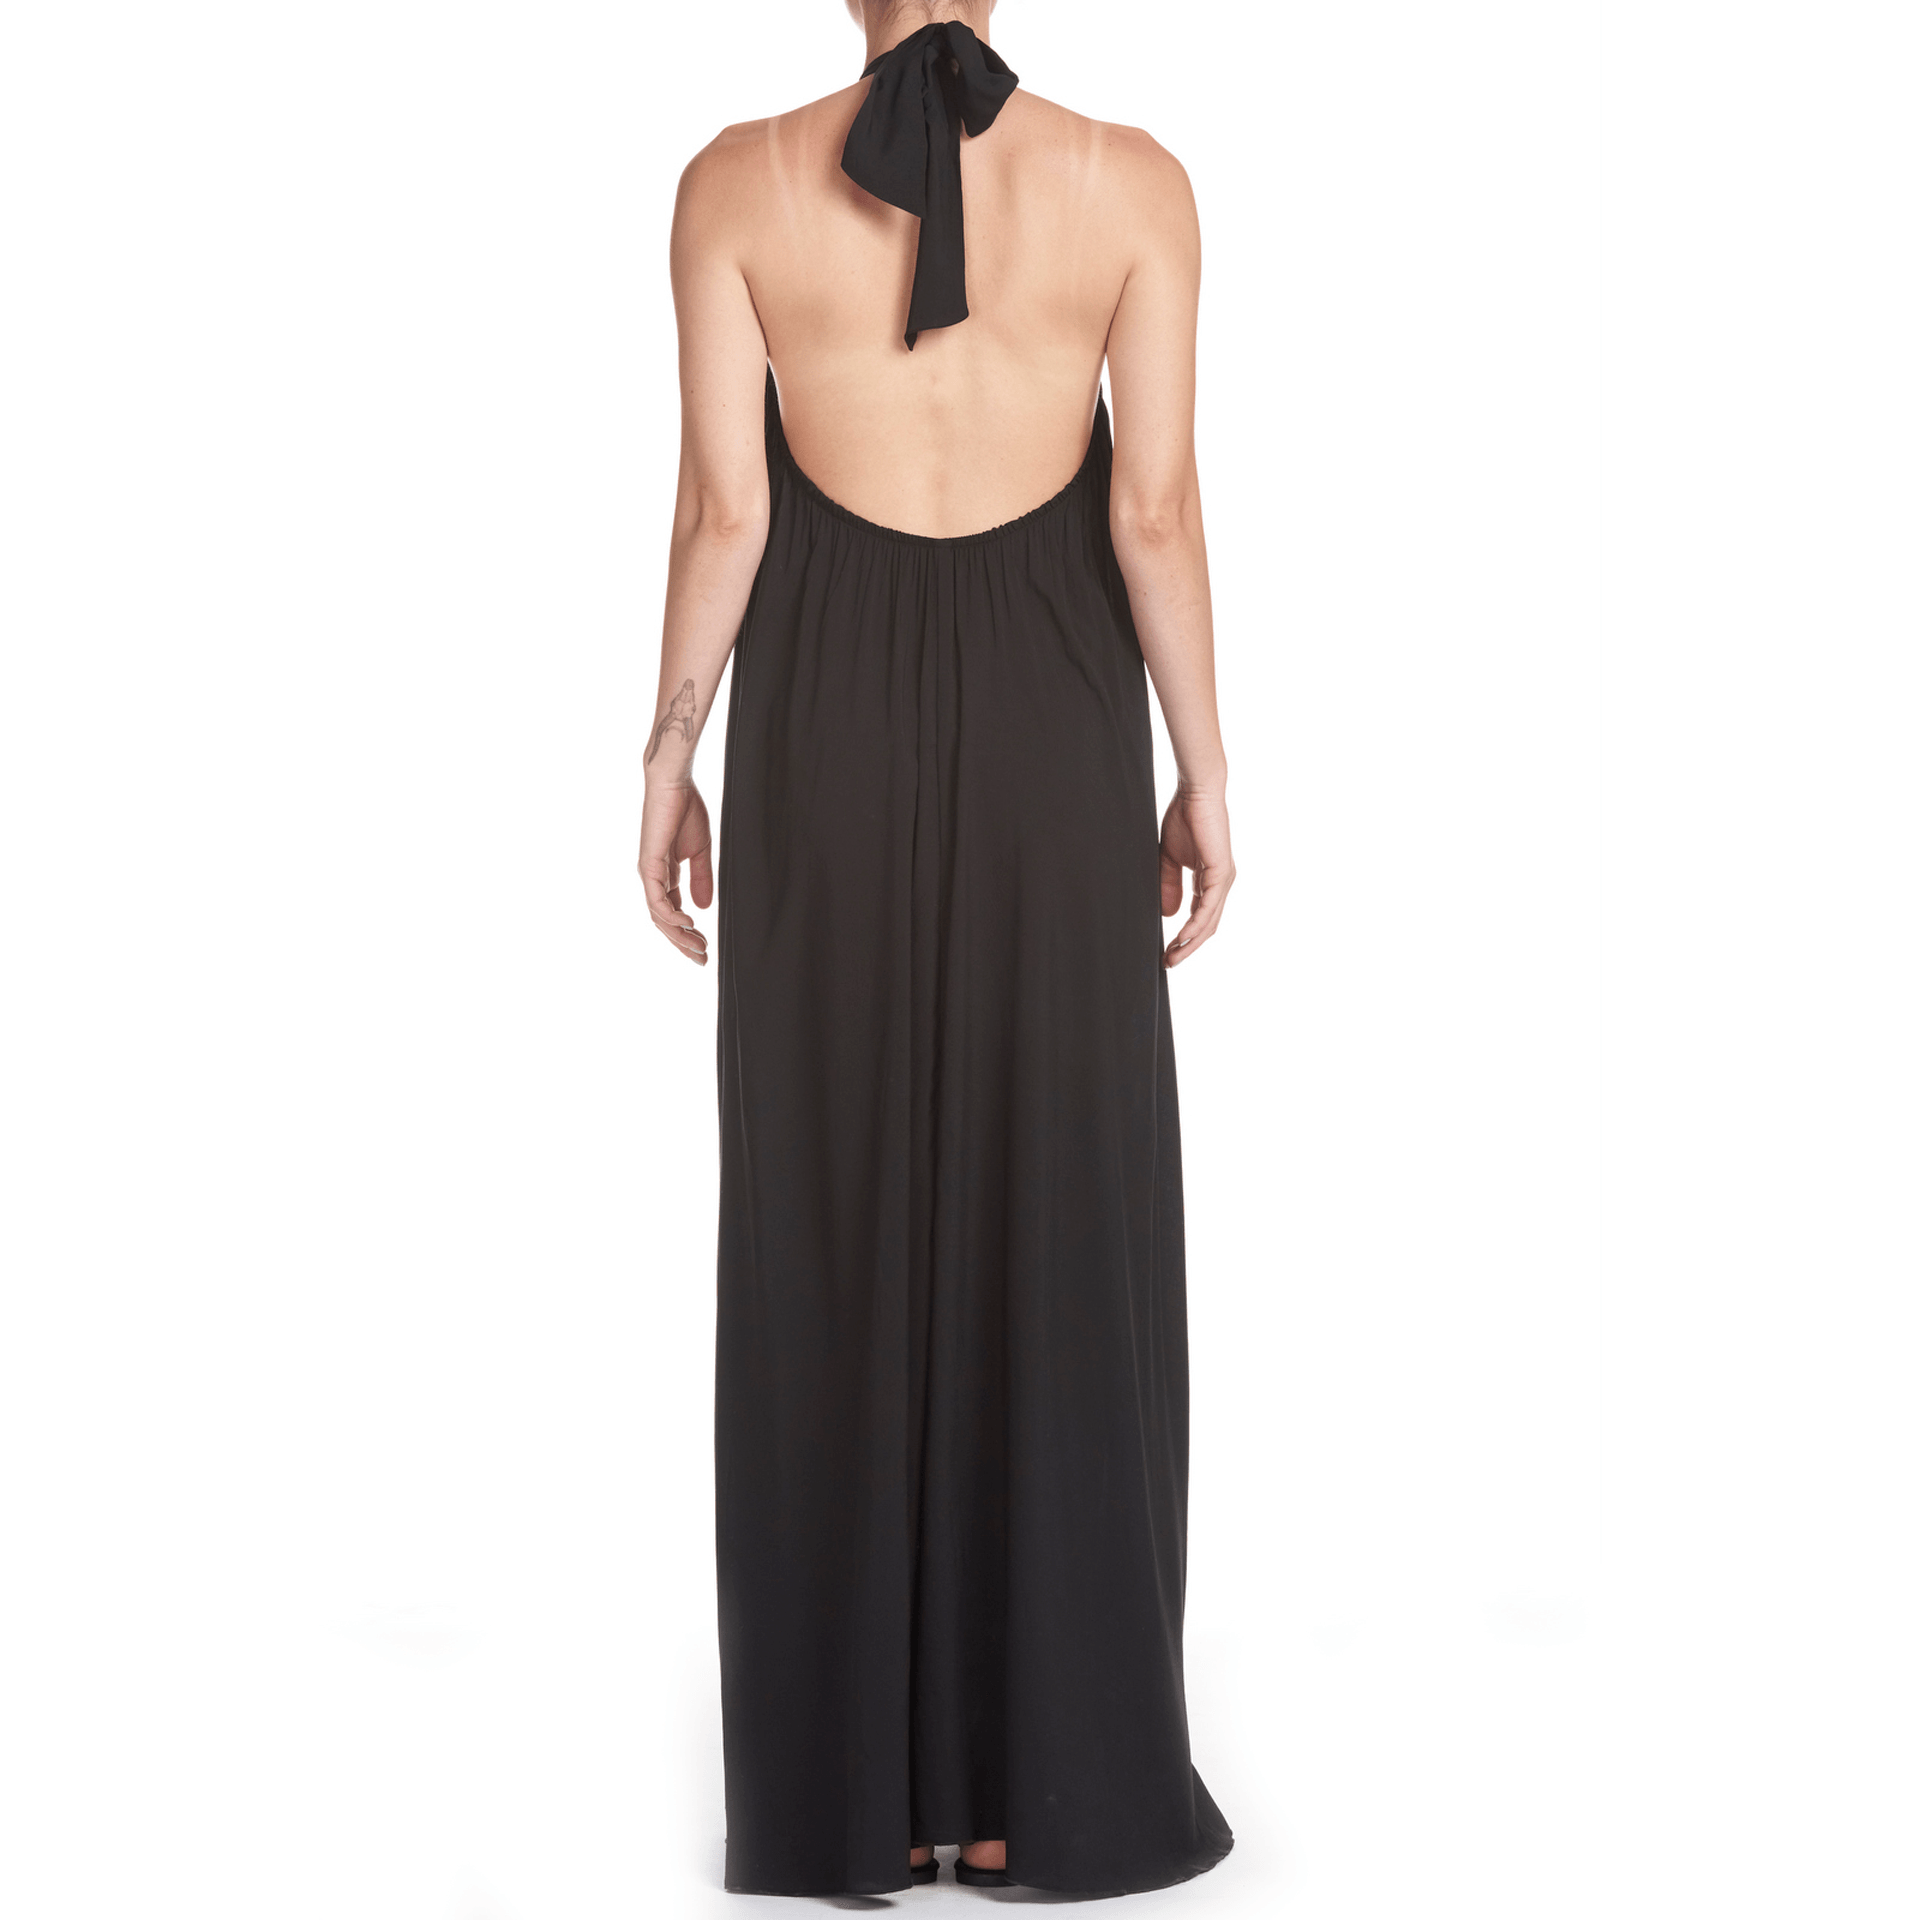 Women's Black Halter Maxi Dress - Back View